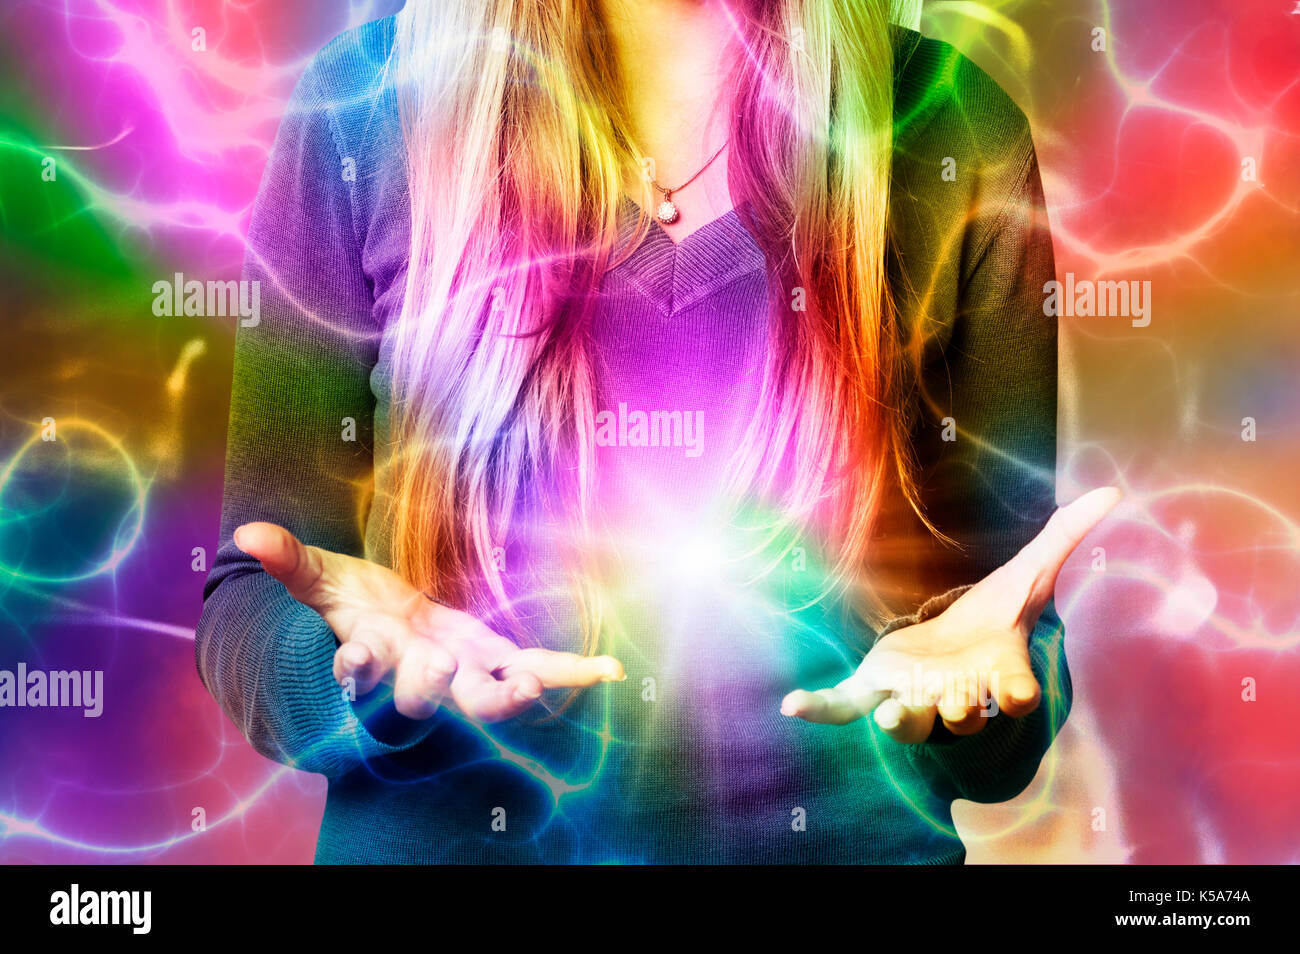 woman with hands open and colors all around, creativity and imagination concept - Stock Image